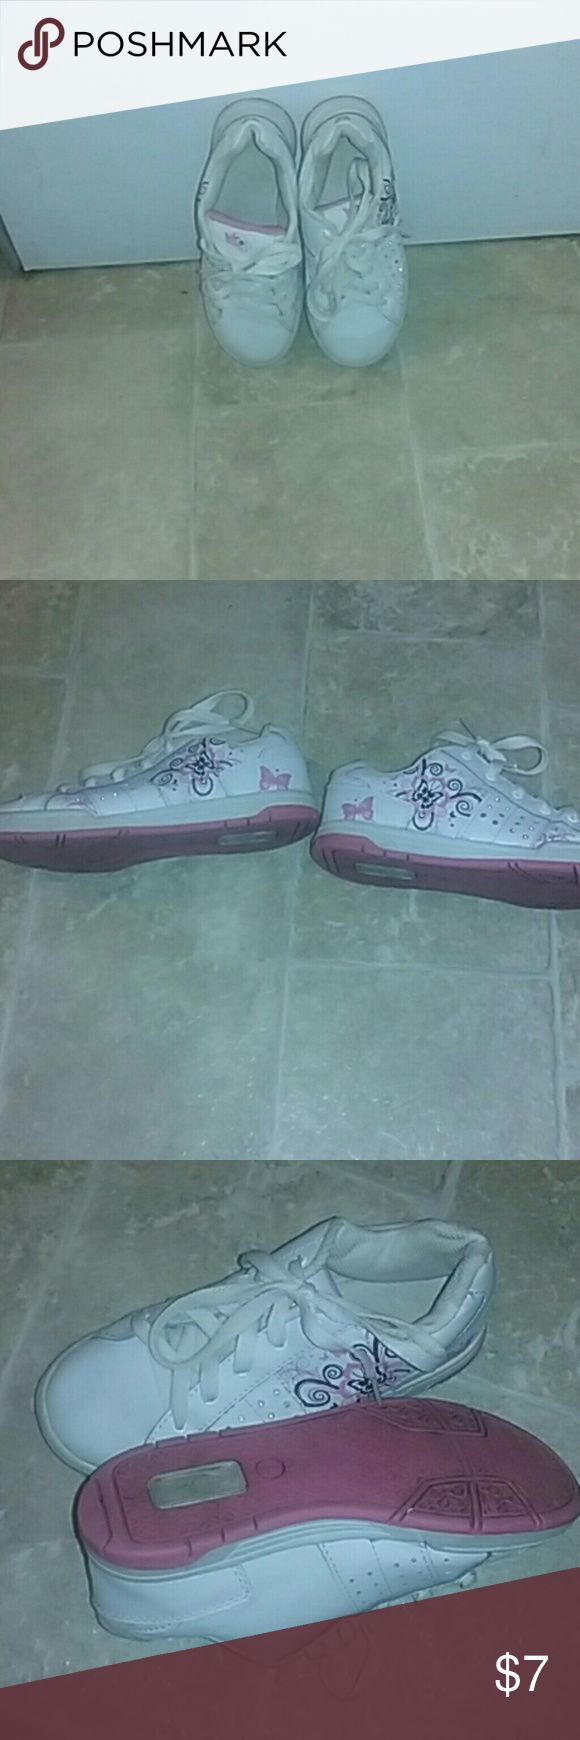 Girls Tennis shoes white with b Very good shape   bright white girls size 2 Tennis Shoes, picture does do them justice. Very clean. Mta Shoes Athletic Shoes